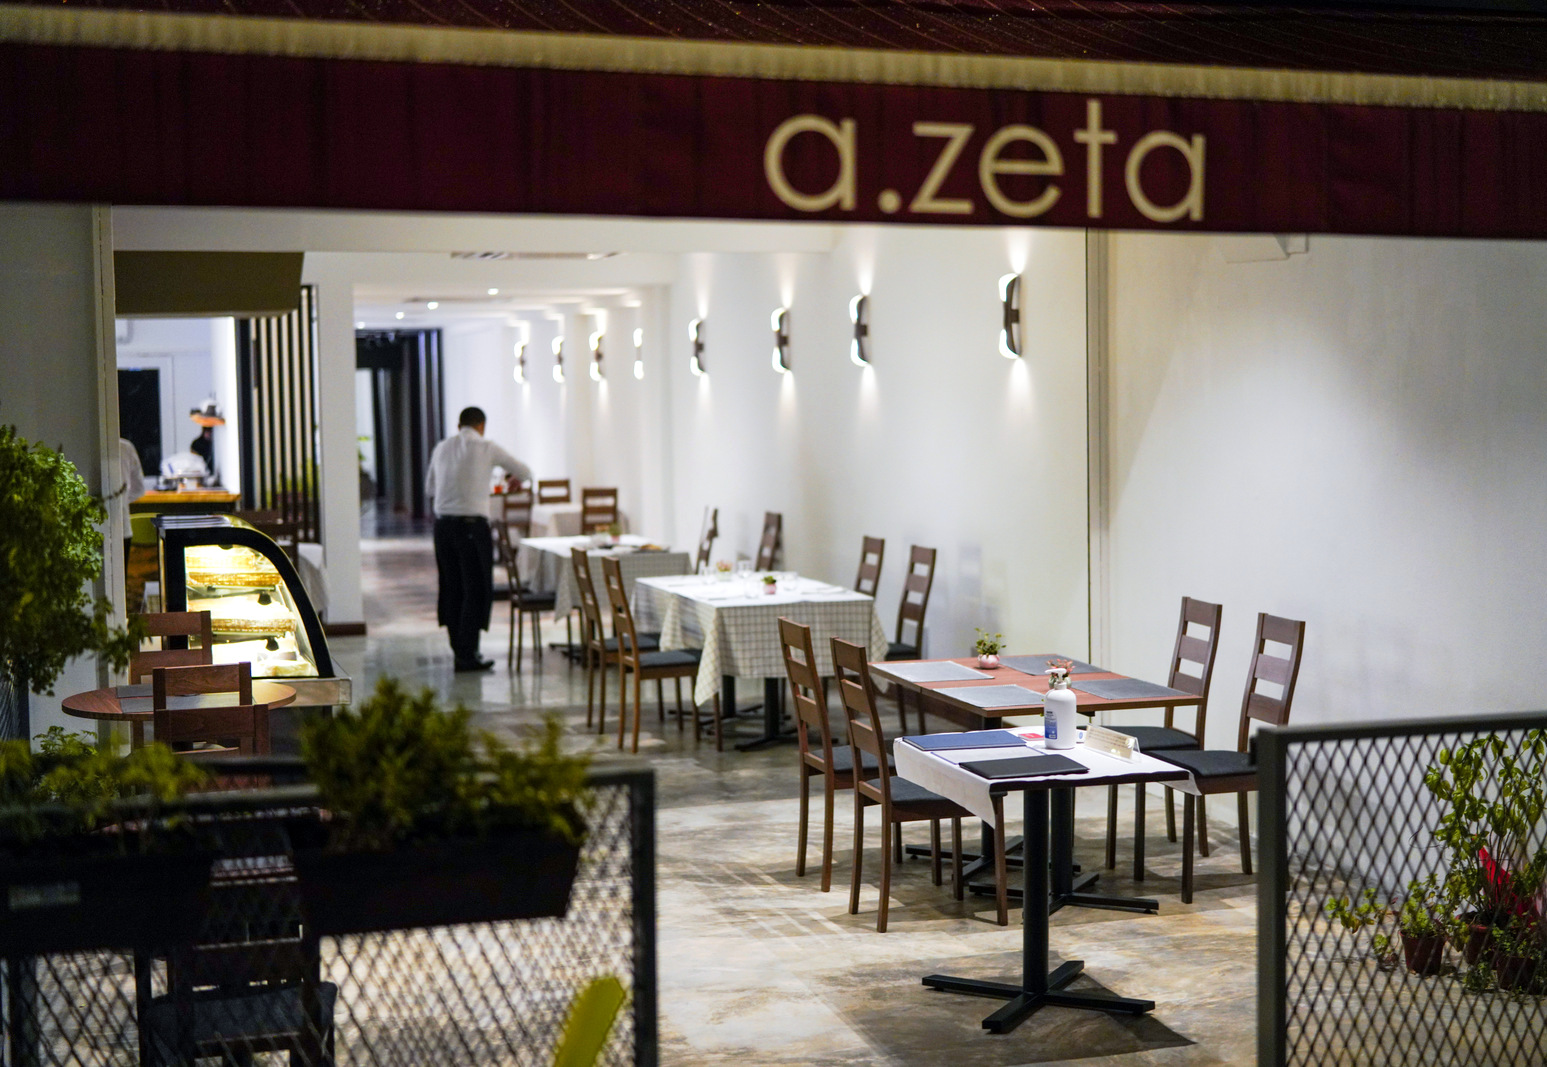 a.zeta kitchen, bangsar